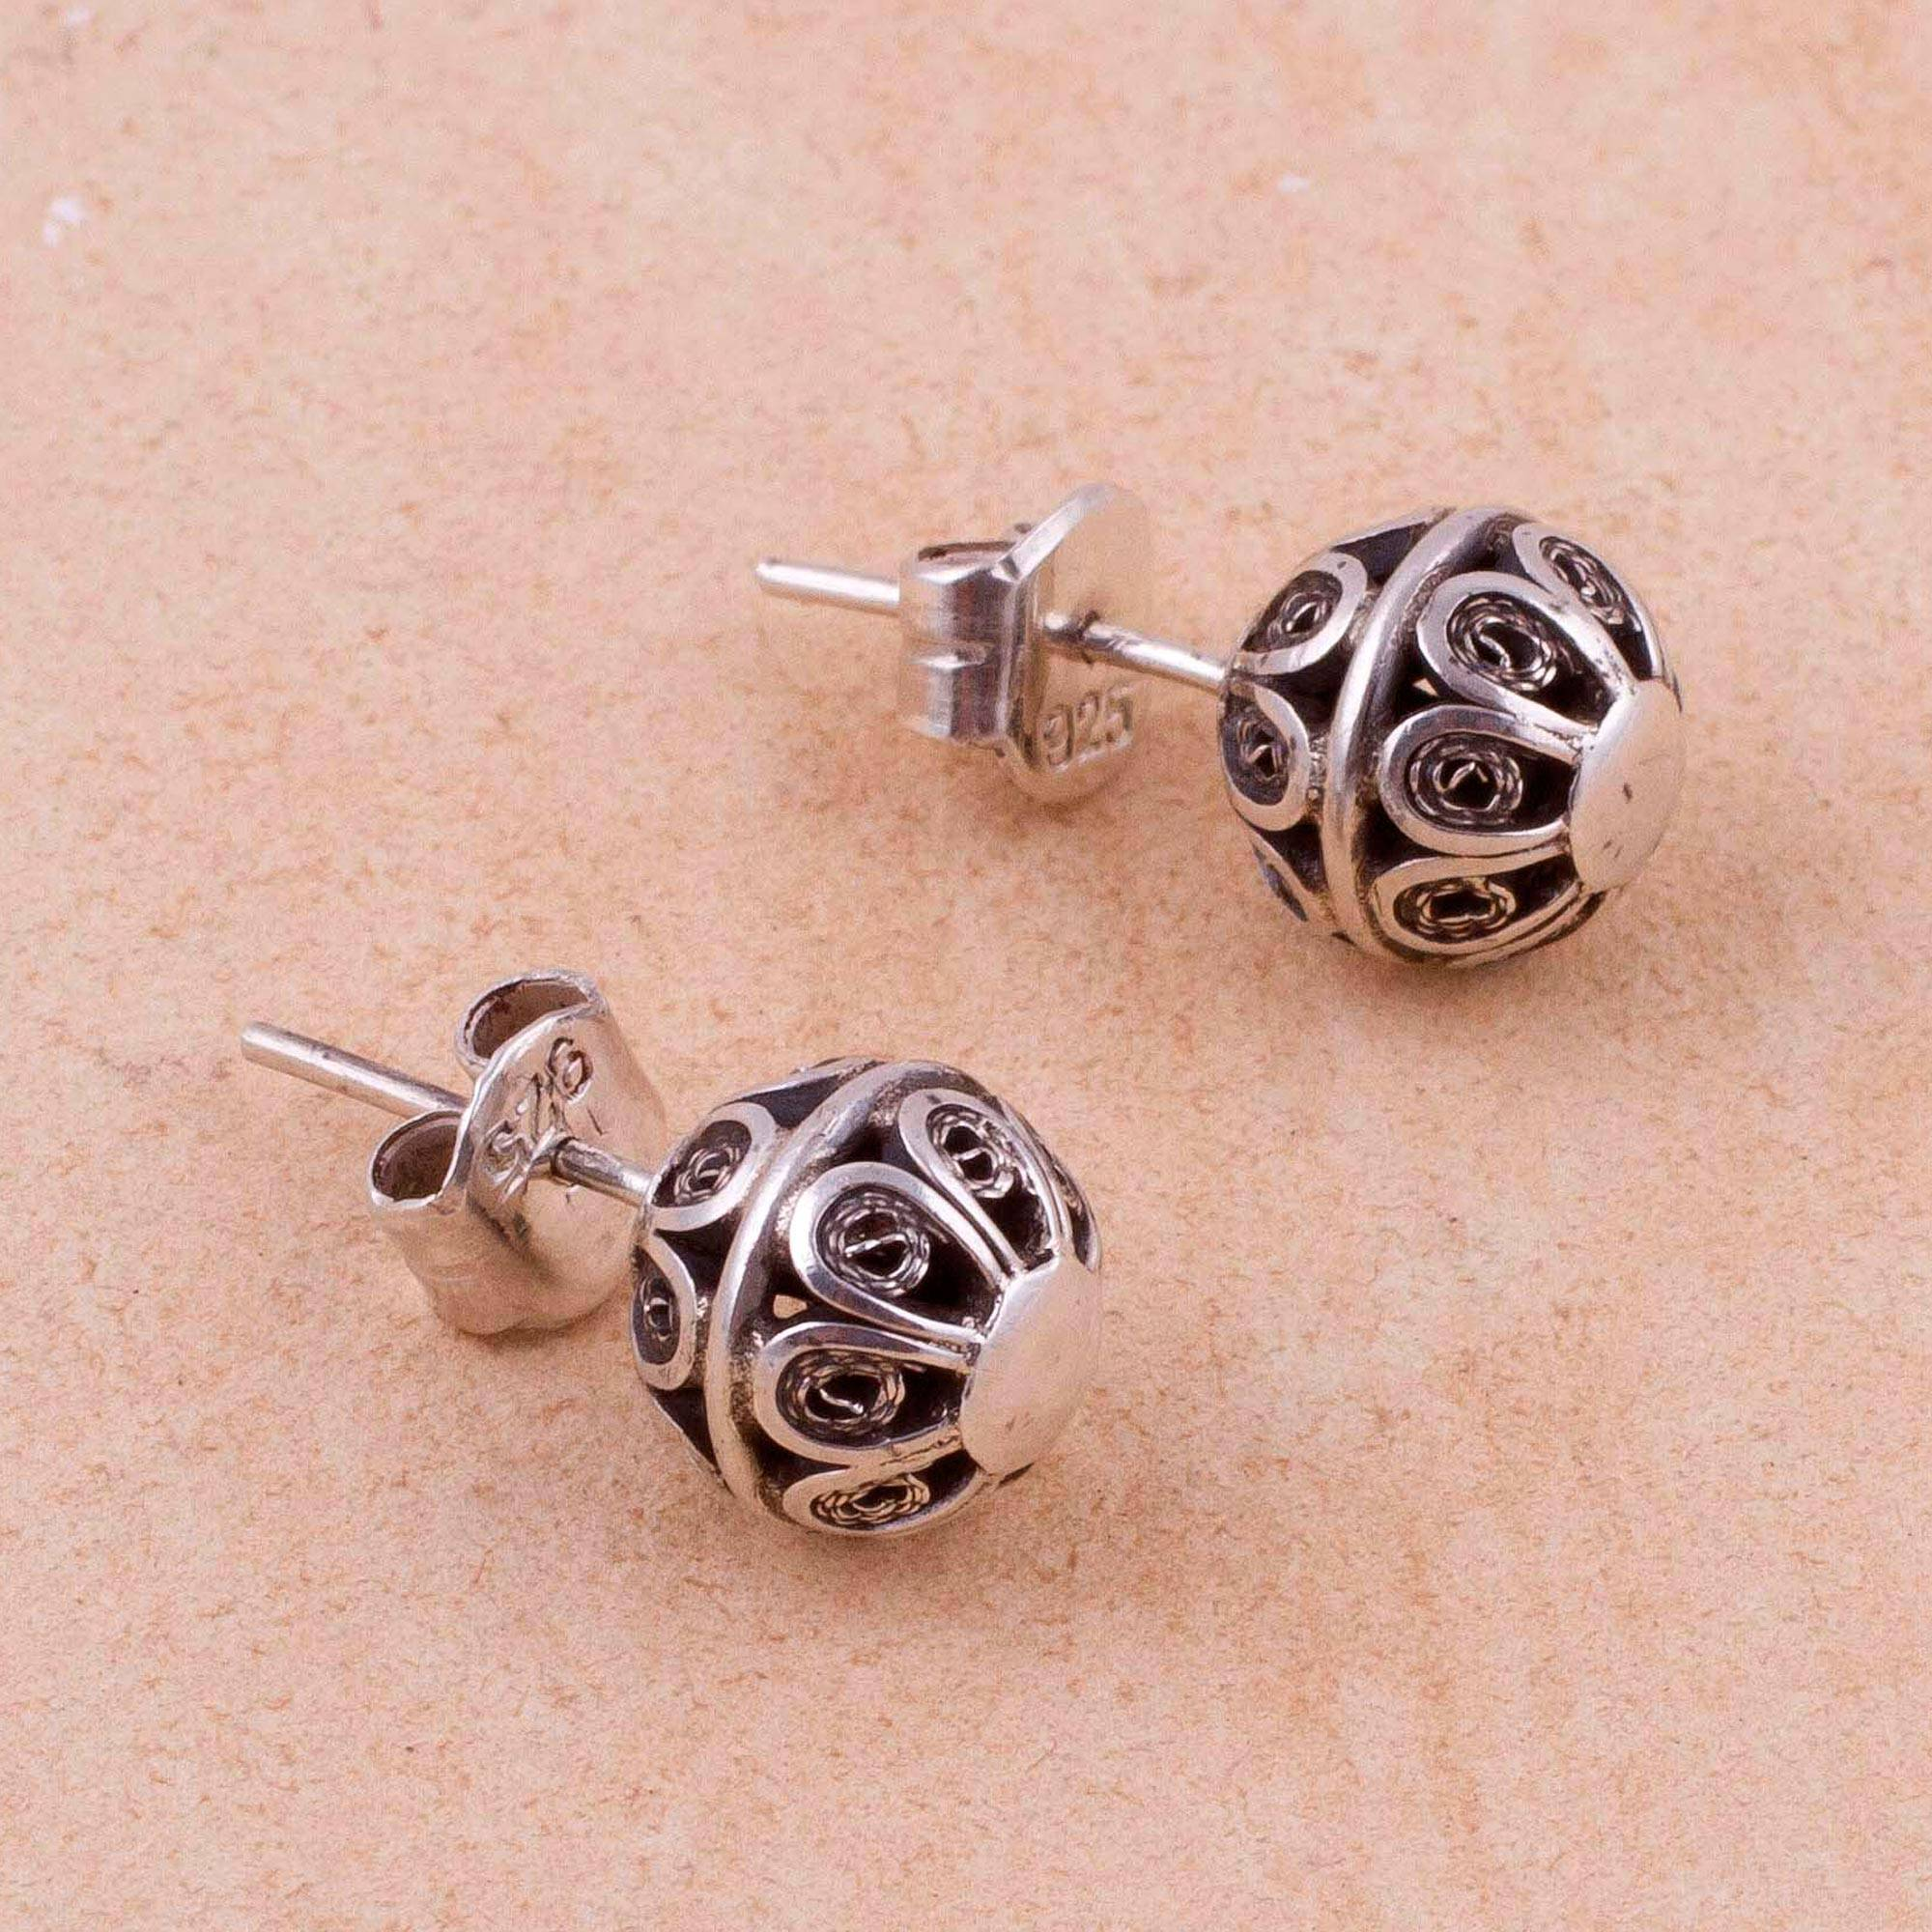 Vintage Style 925 Sterling Silver Filigree Stud Earrings Sweet Charmer